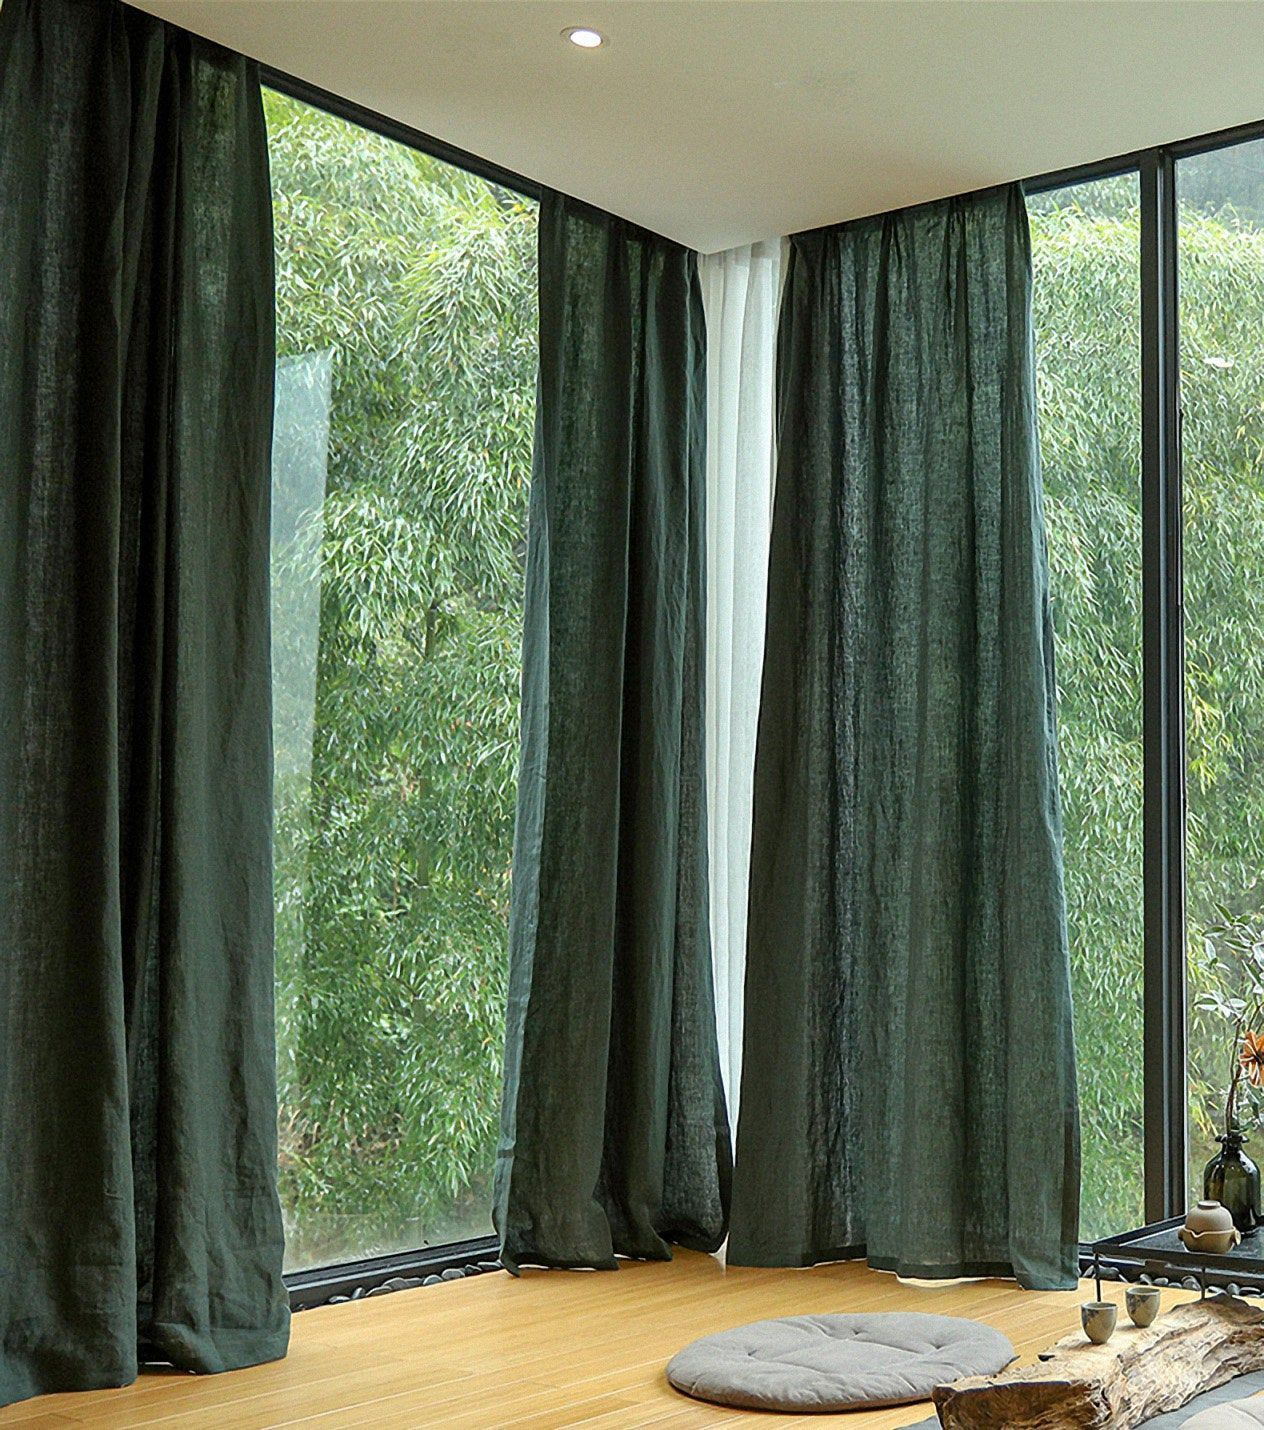 Cutsom Pure Linen Curtains Dark Green Farmhouse Decor Curtain